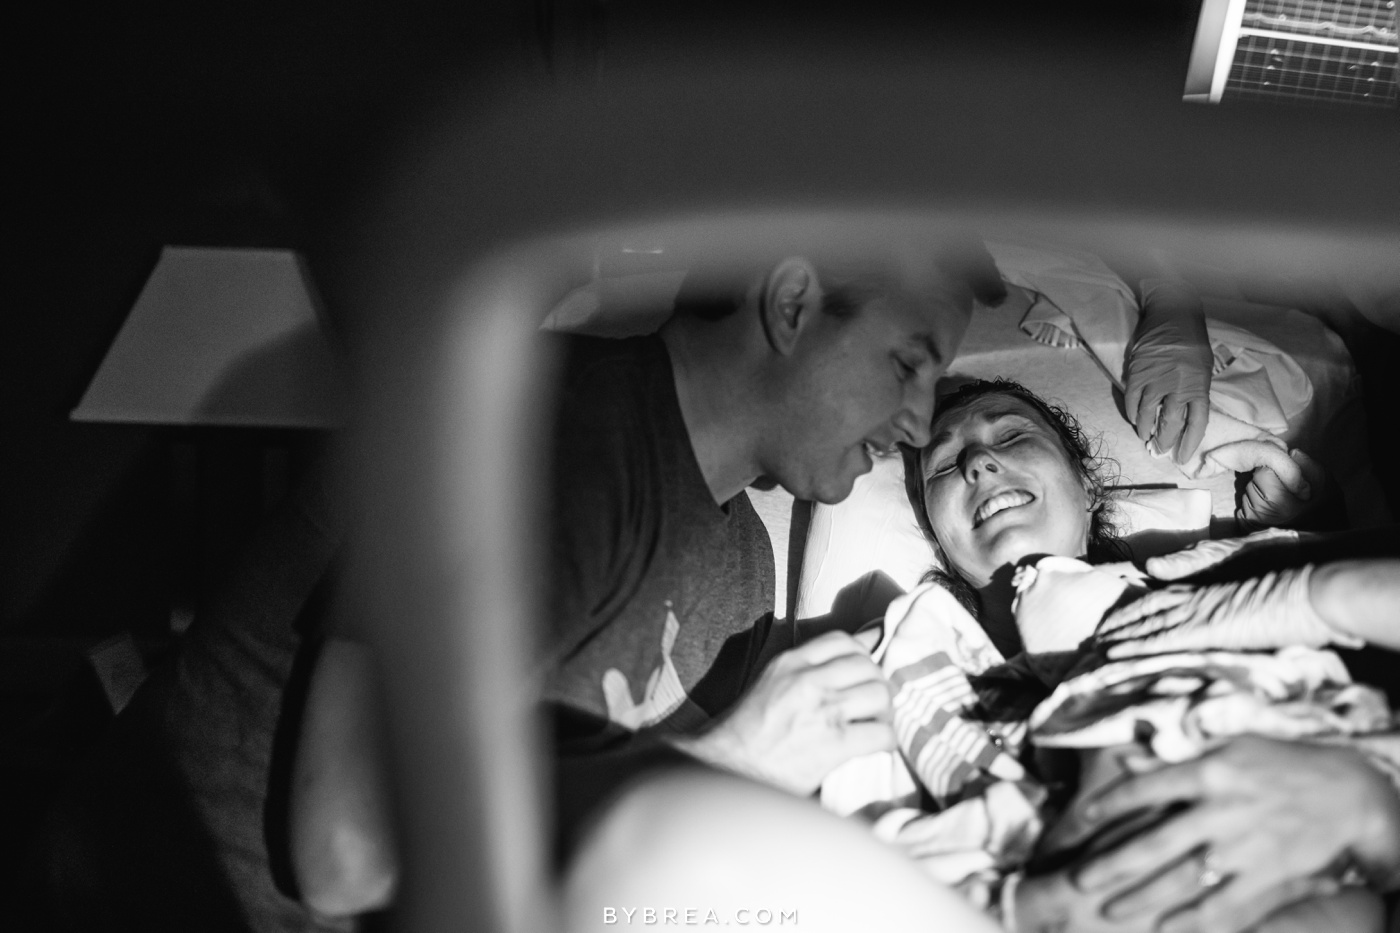 Baltimore Birth Photographer - St Joseph's Hospital